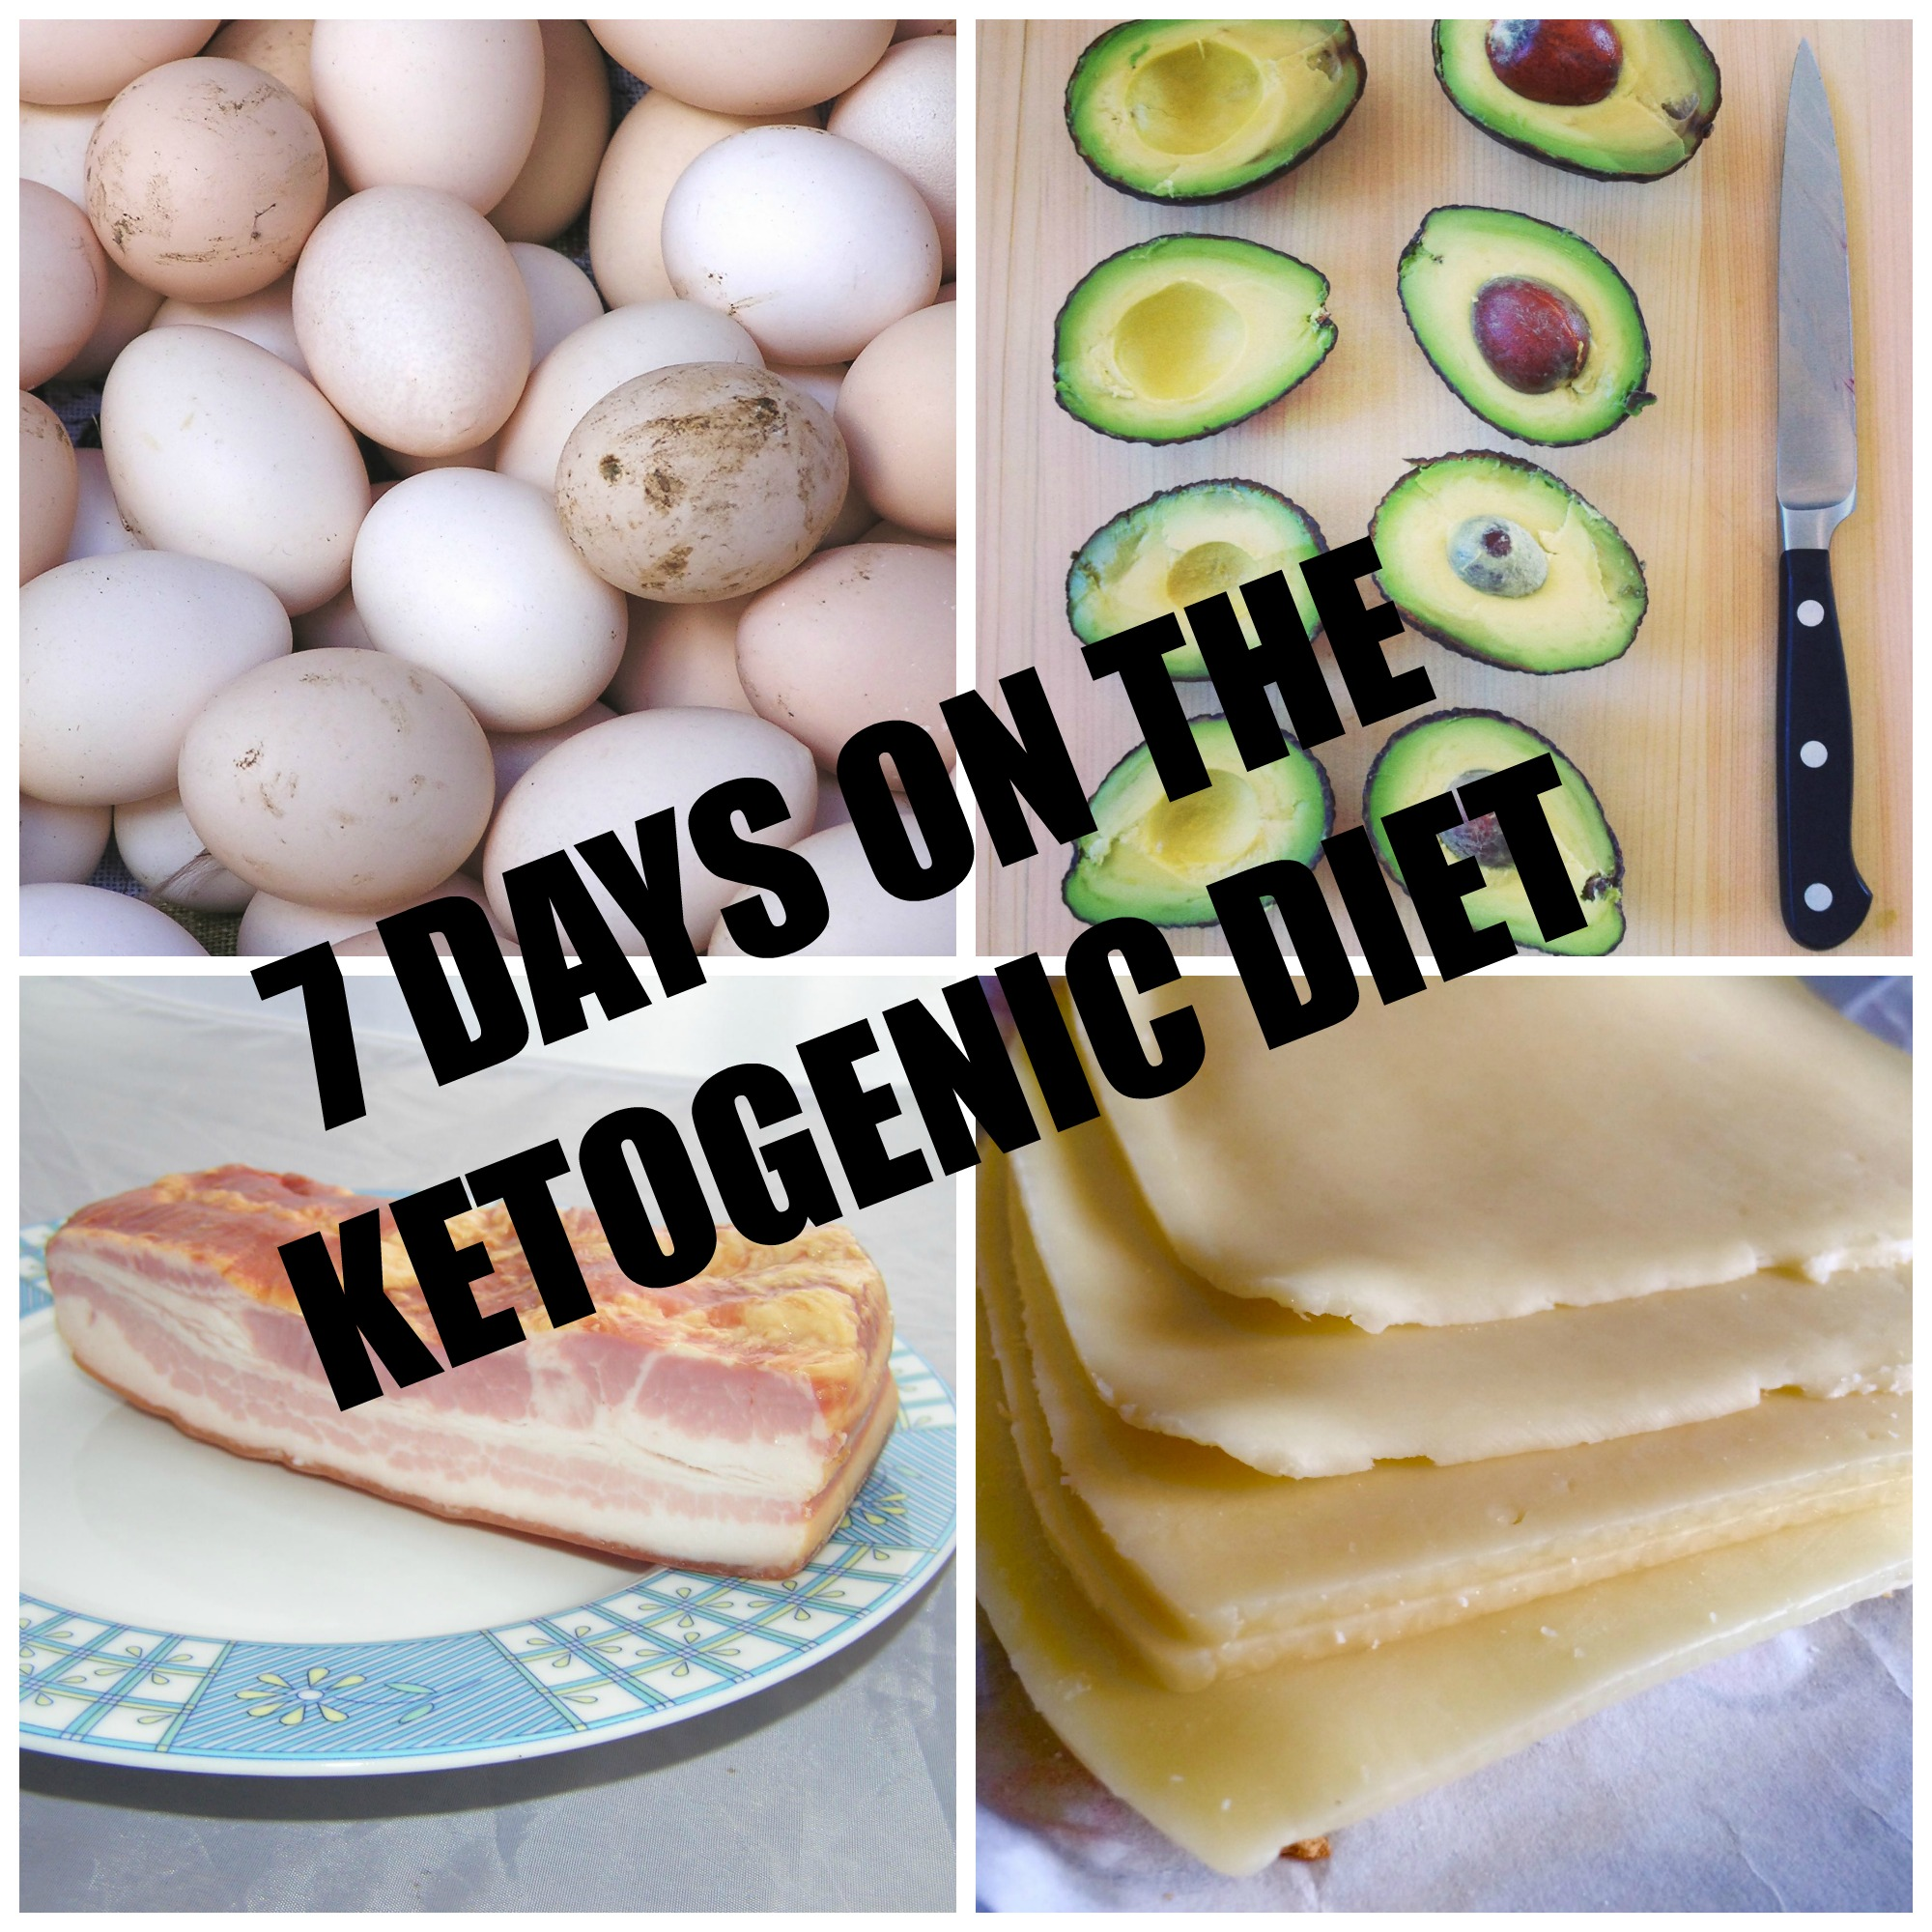 ketosis, ketones, ketogenic diet, dietitian on a ketogenic diet